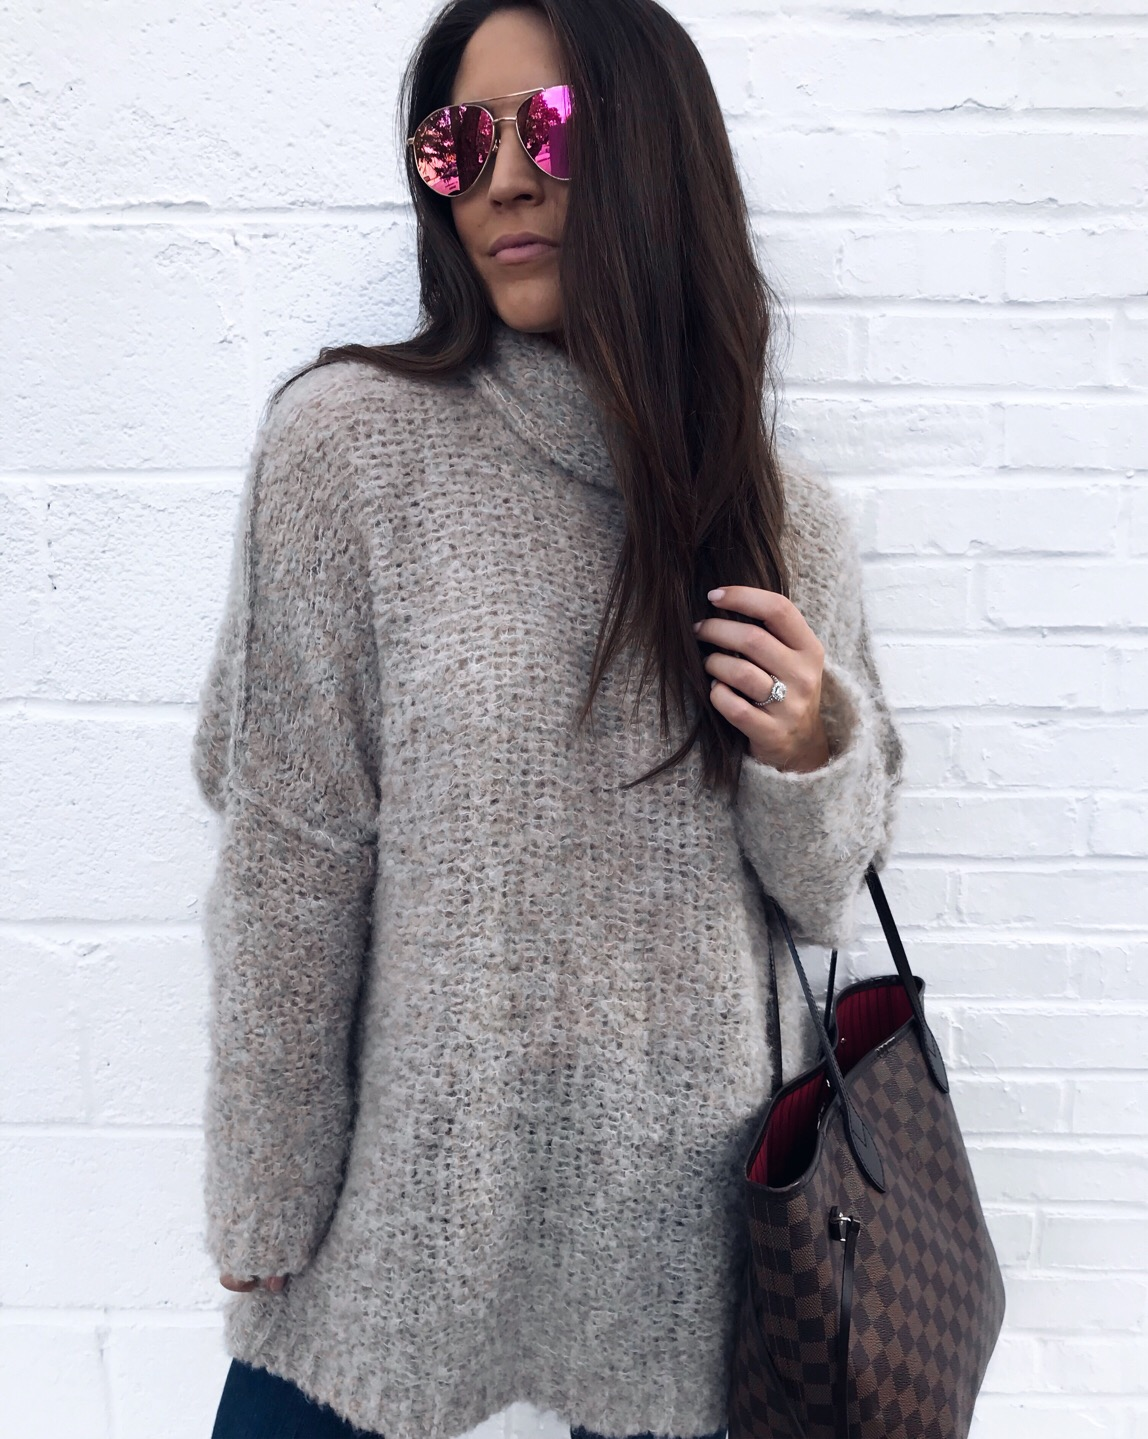 fall outfit idea, fall fashion, fall outfit inspiration, free people sweater, cozy sweater, diff eyewear